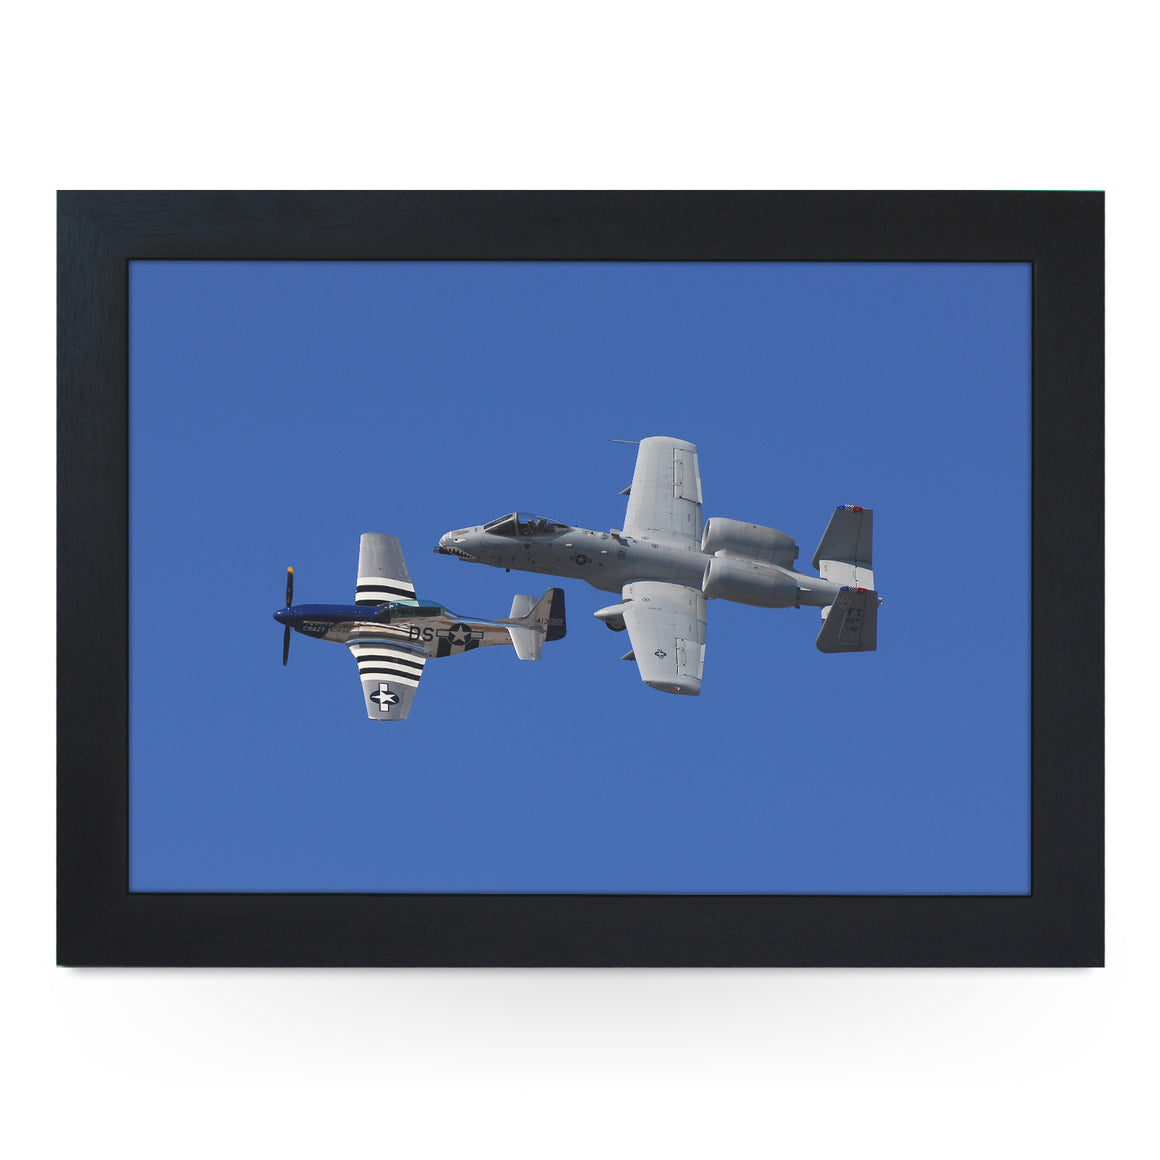 Fairchild Republic A-10 Thunderbolt Plane Lap Tray - AD12946